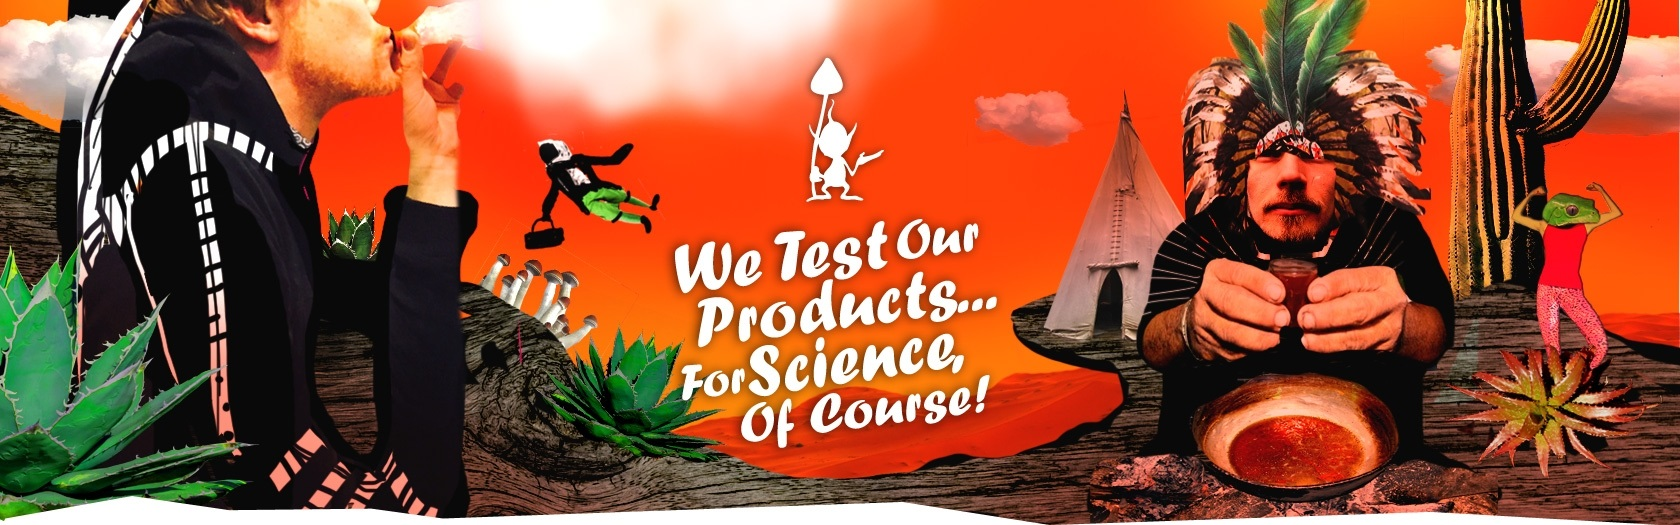 We Test Our Products